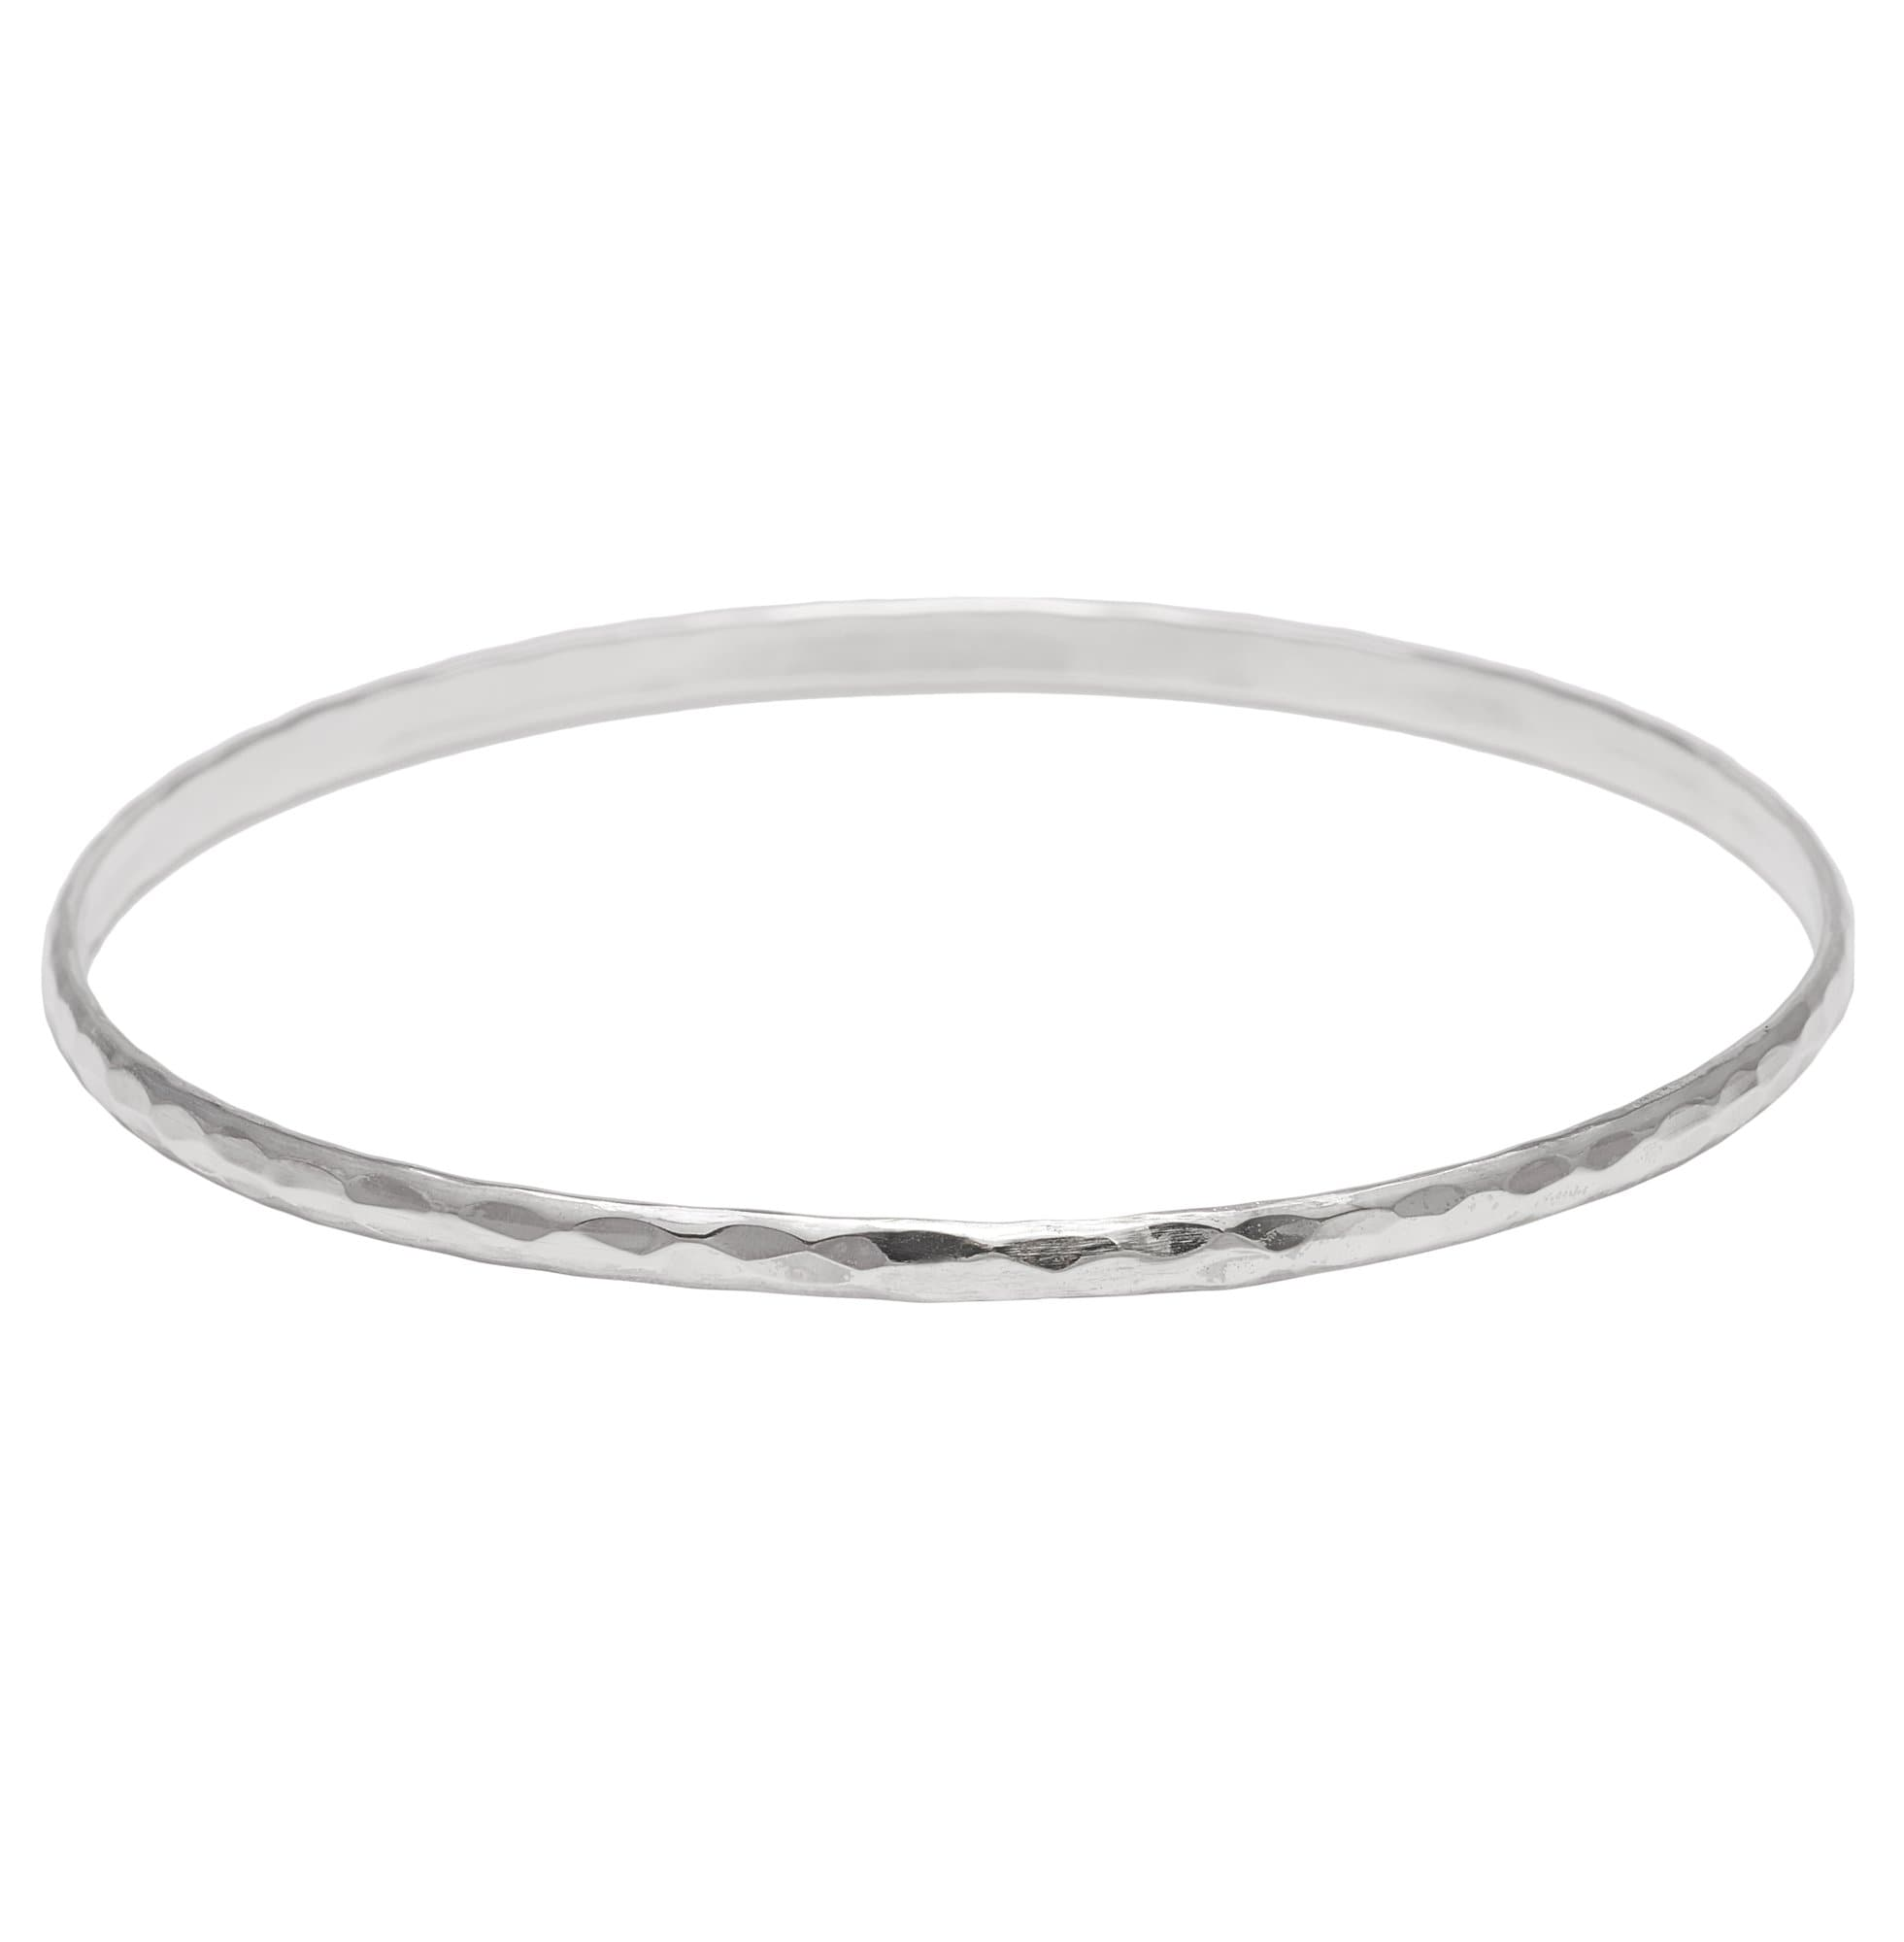 watches bracelet bangle mondevio cut sterling bracelets design silver product twist diamond jewelry plain bangles